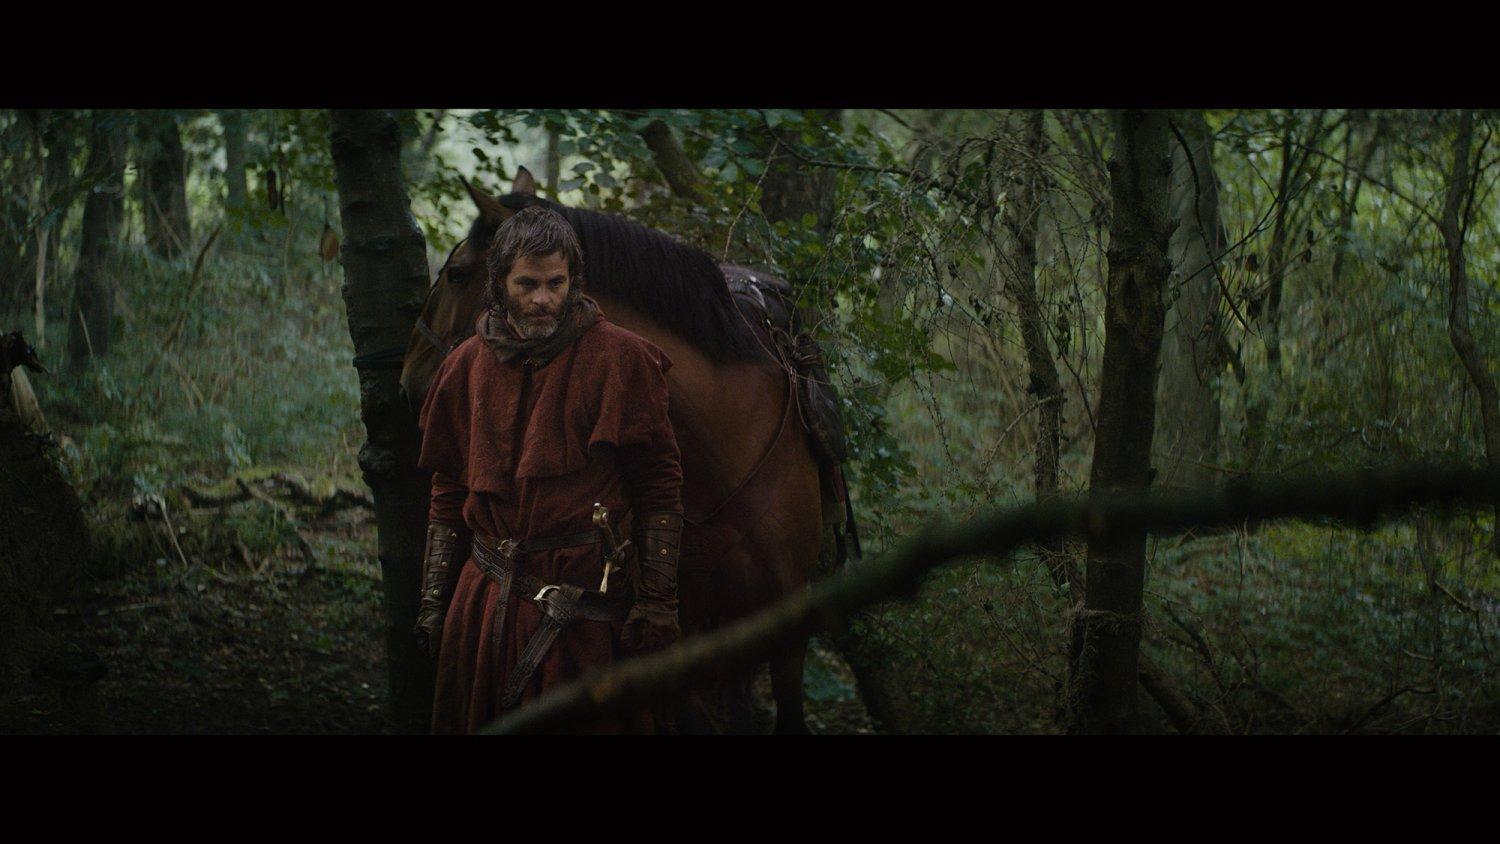 Outlaw king first look